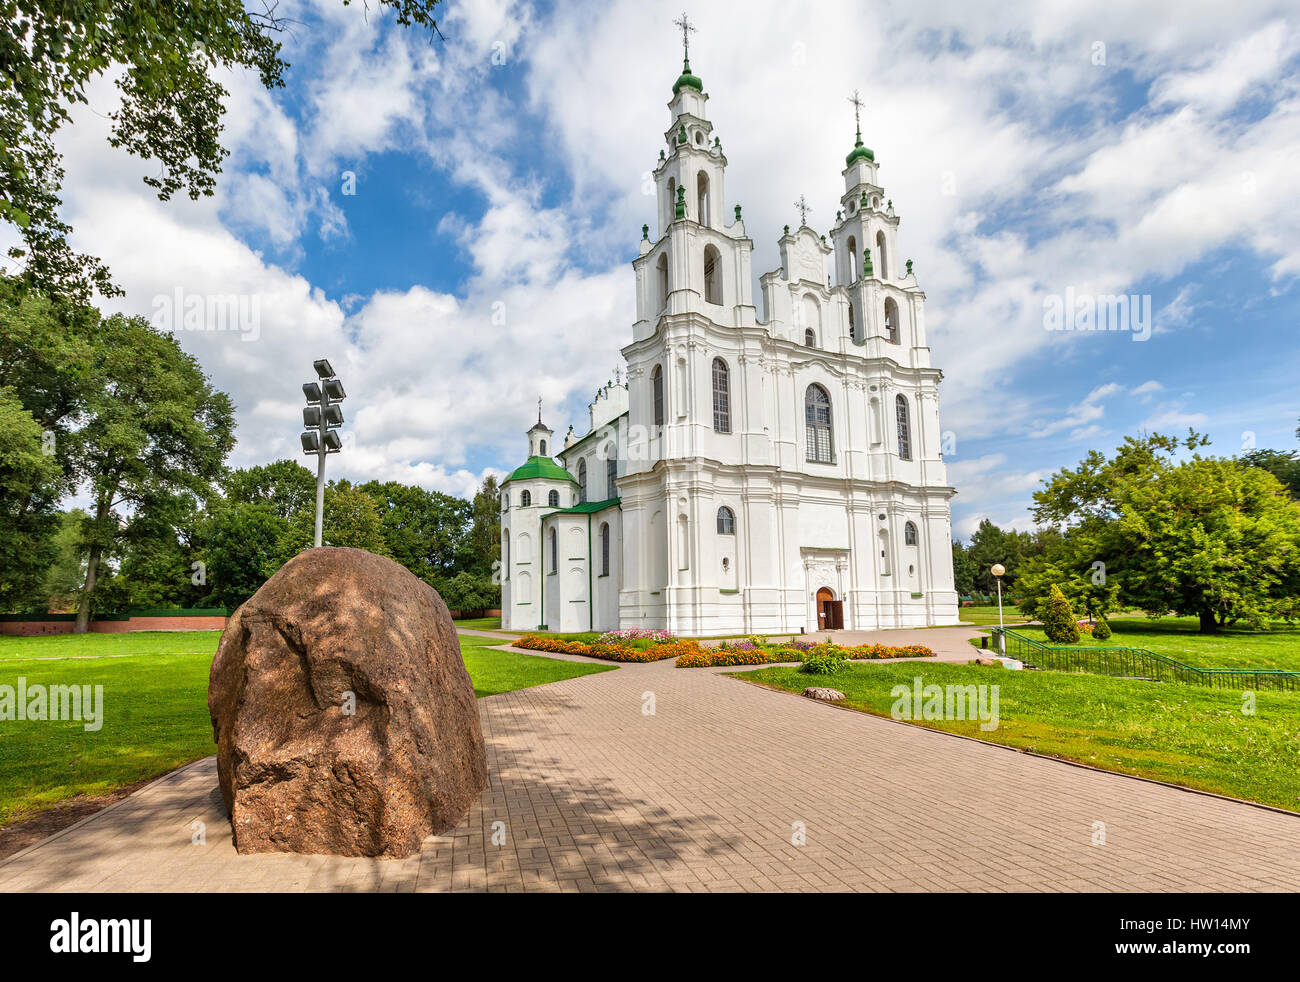 Saint Sophia Cathedral in Polatsk, Belarus - Stock Image